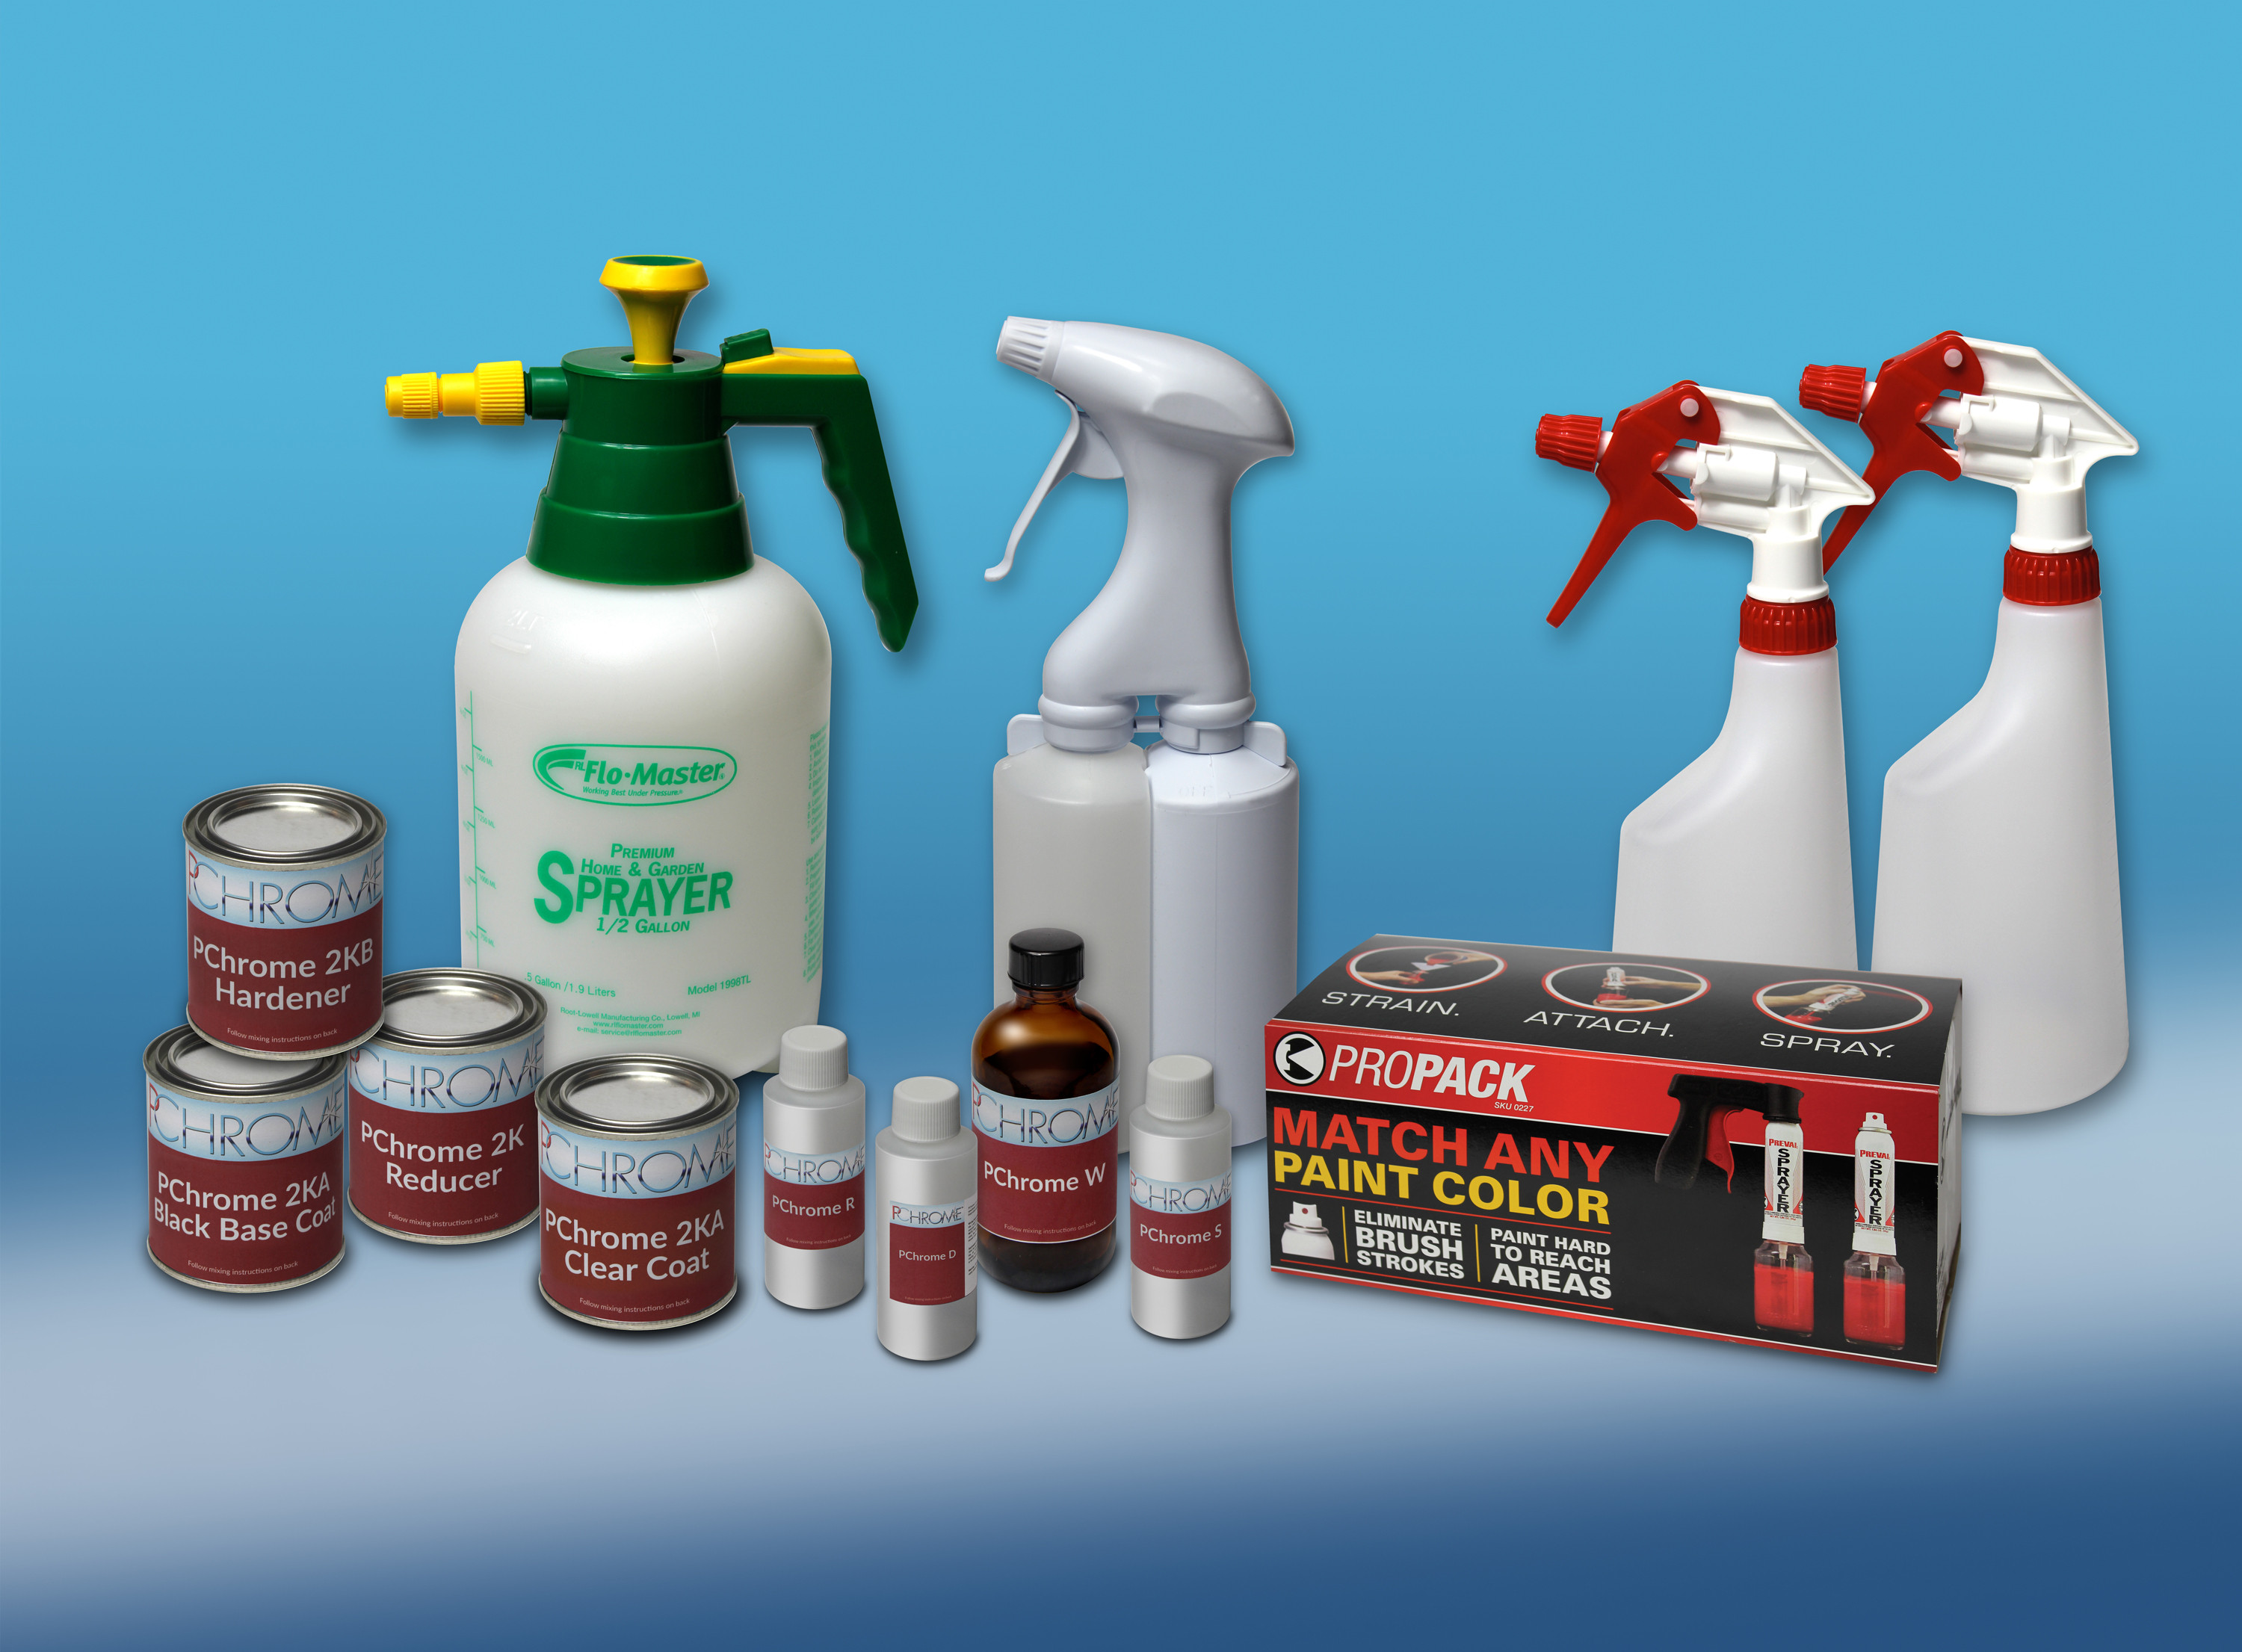 Starter Spray Chrome Kit